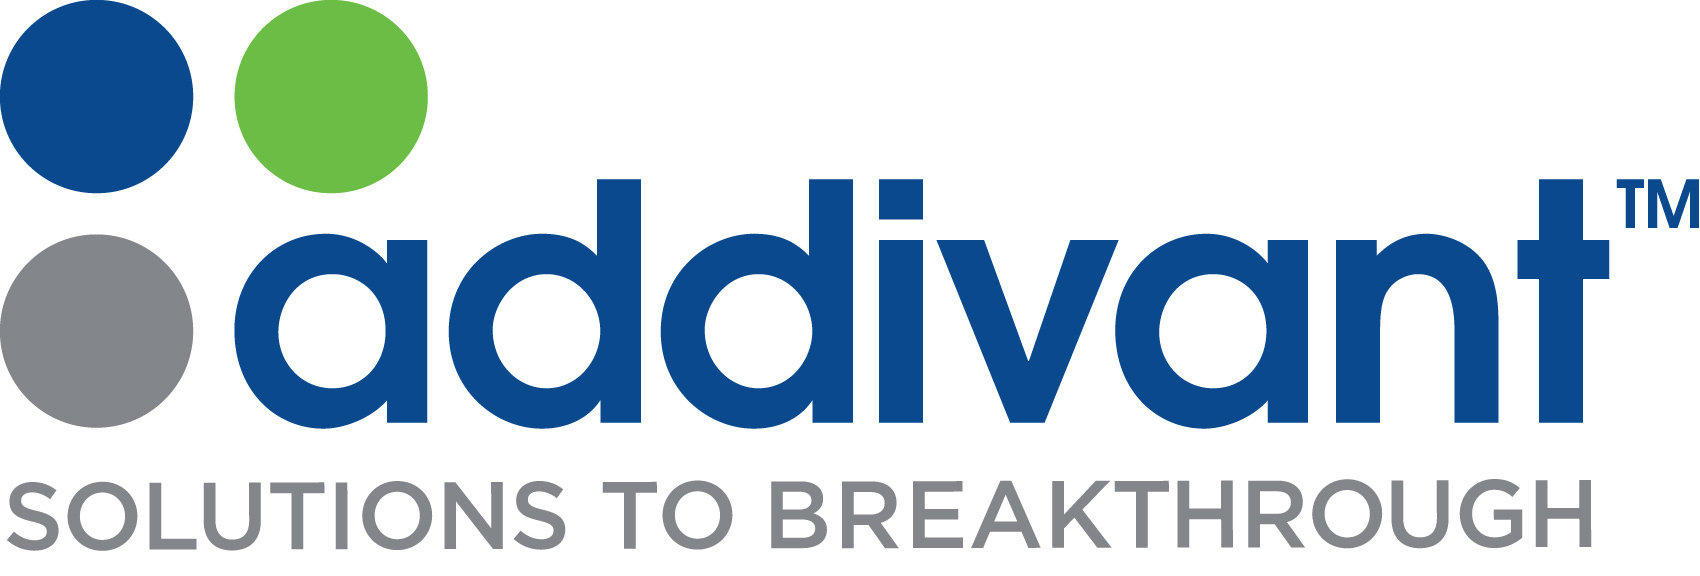 New Addivant Corporate Identity - A team of employees in R&D, engineering and sales created the name Addivant(TM) to emphasize the company's intent to deliver competitive advantages through innovative additive solutions to the specialty chemicals industry and customers around the world. A new signature line, Solutions to Breakthrough, represents the company's mission to work intimately with customers to solve their toughest challenges and deliver customized, next-generation chemical and material solutions. (Graphic: Business Wire)